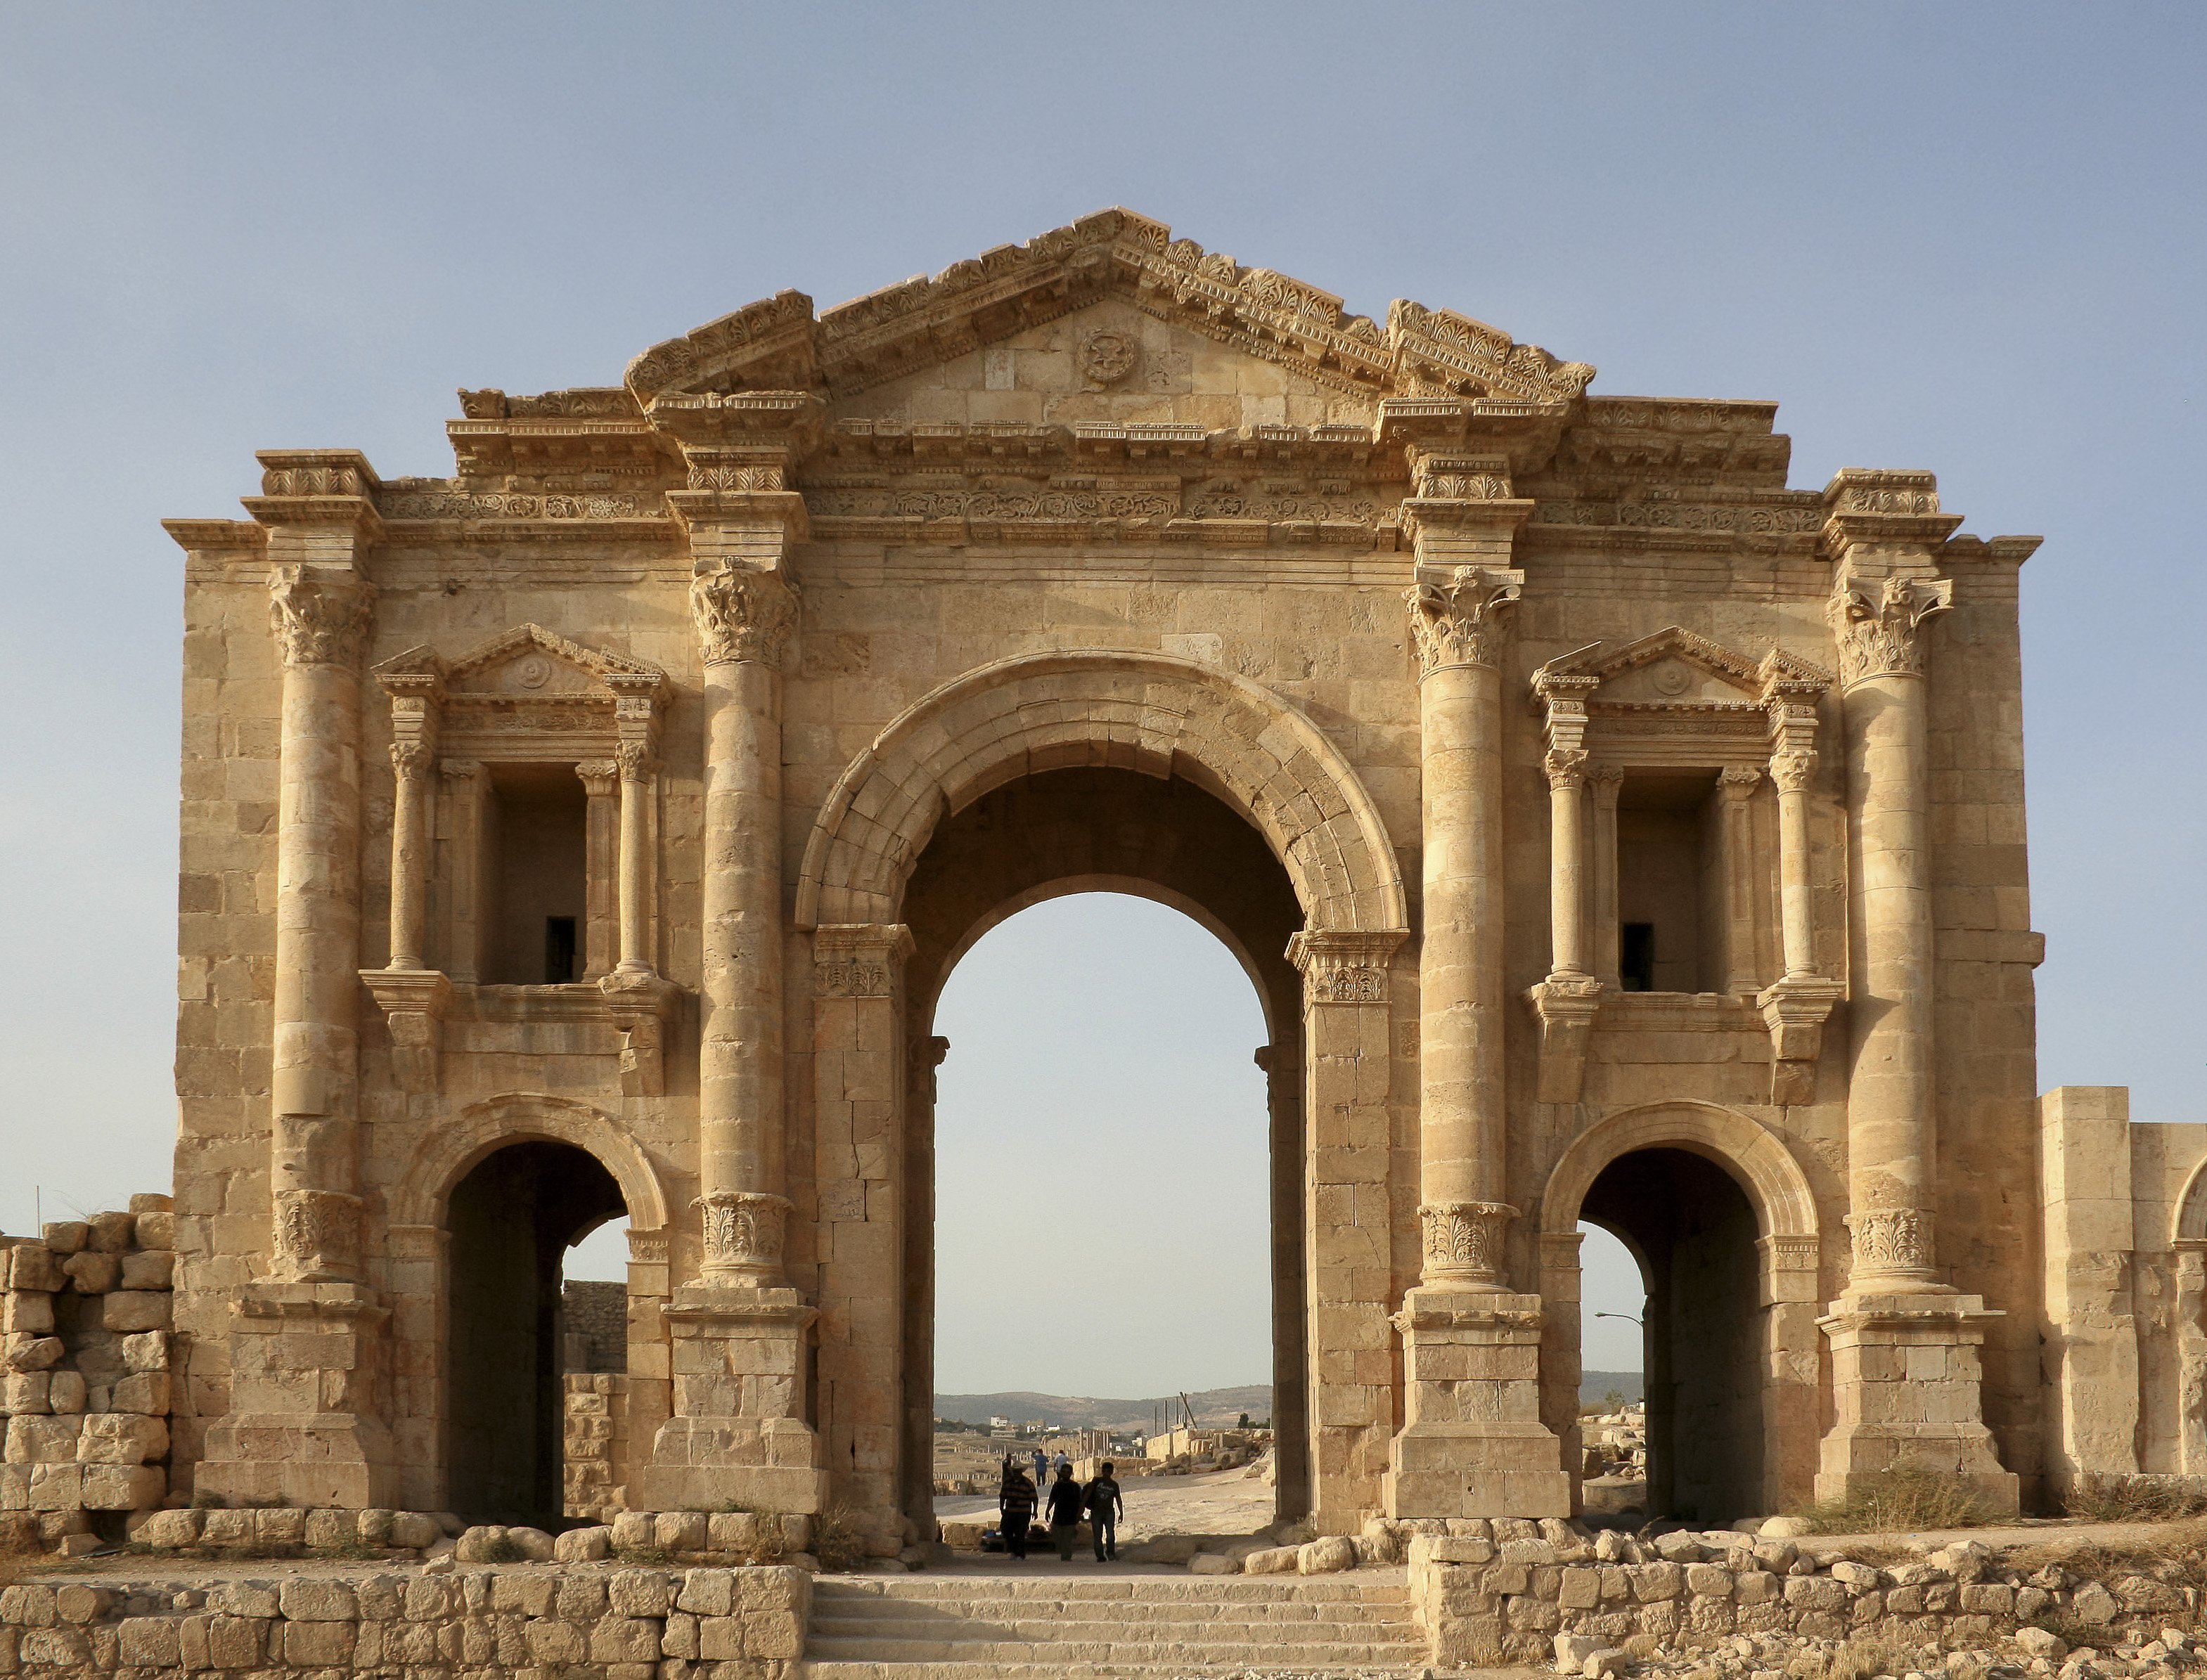 File:Arch of Hadrian, Jerash, Jordan2.jpg - Wikimedia Commons